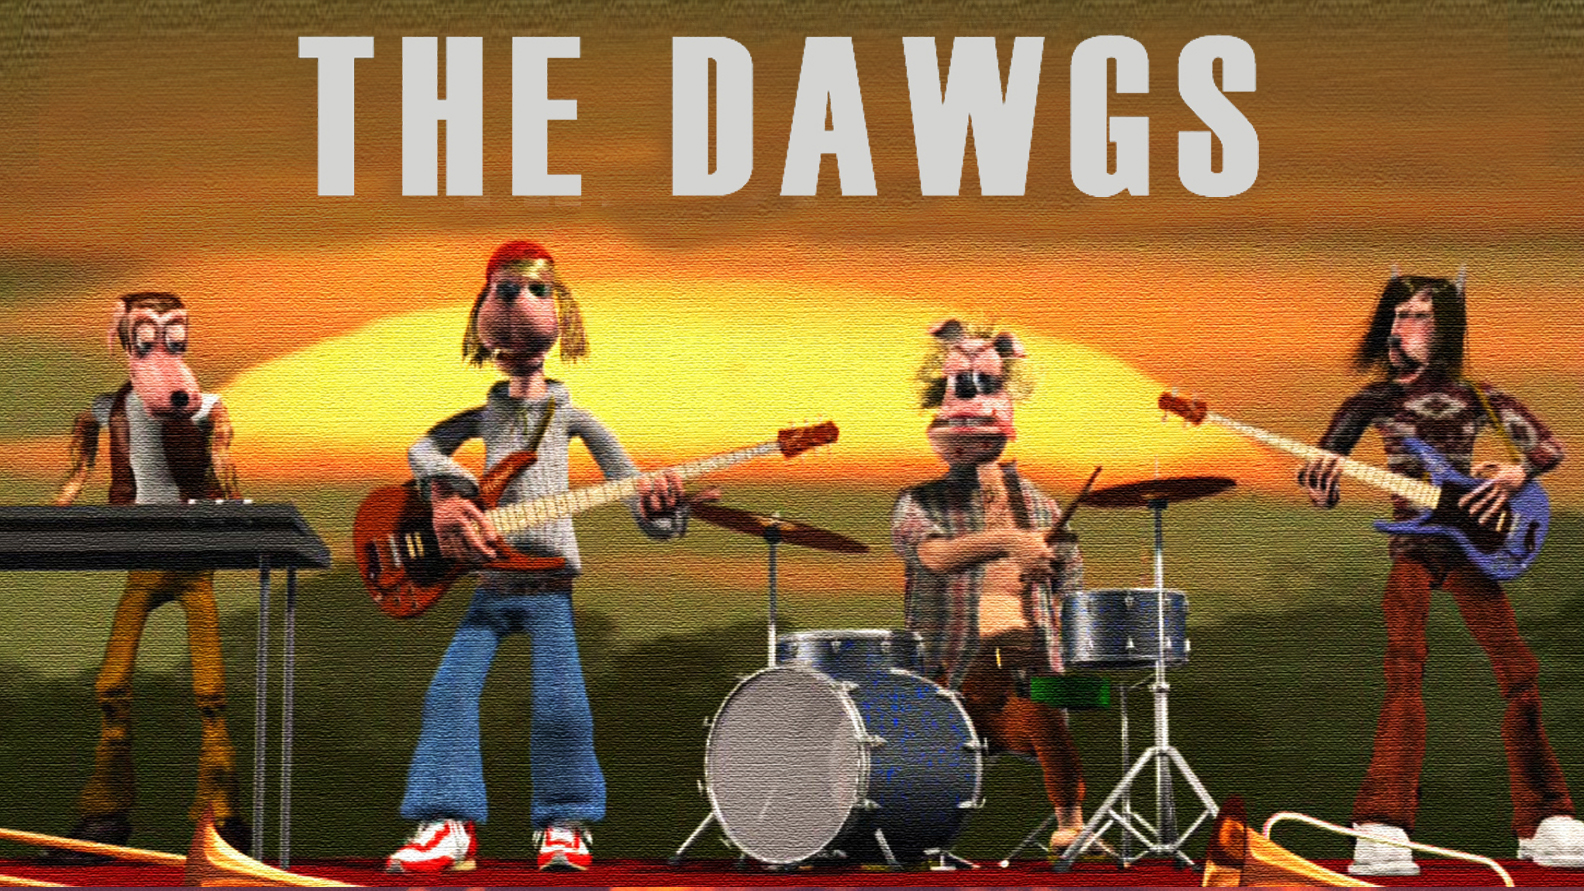 The Dawgs